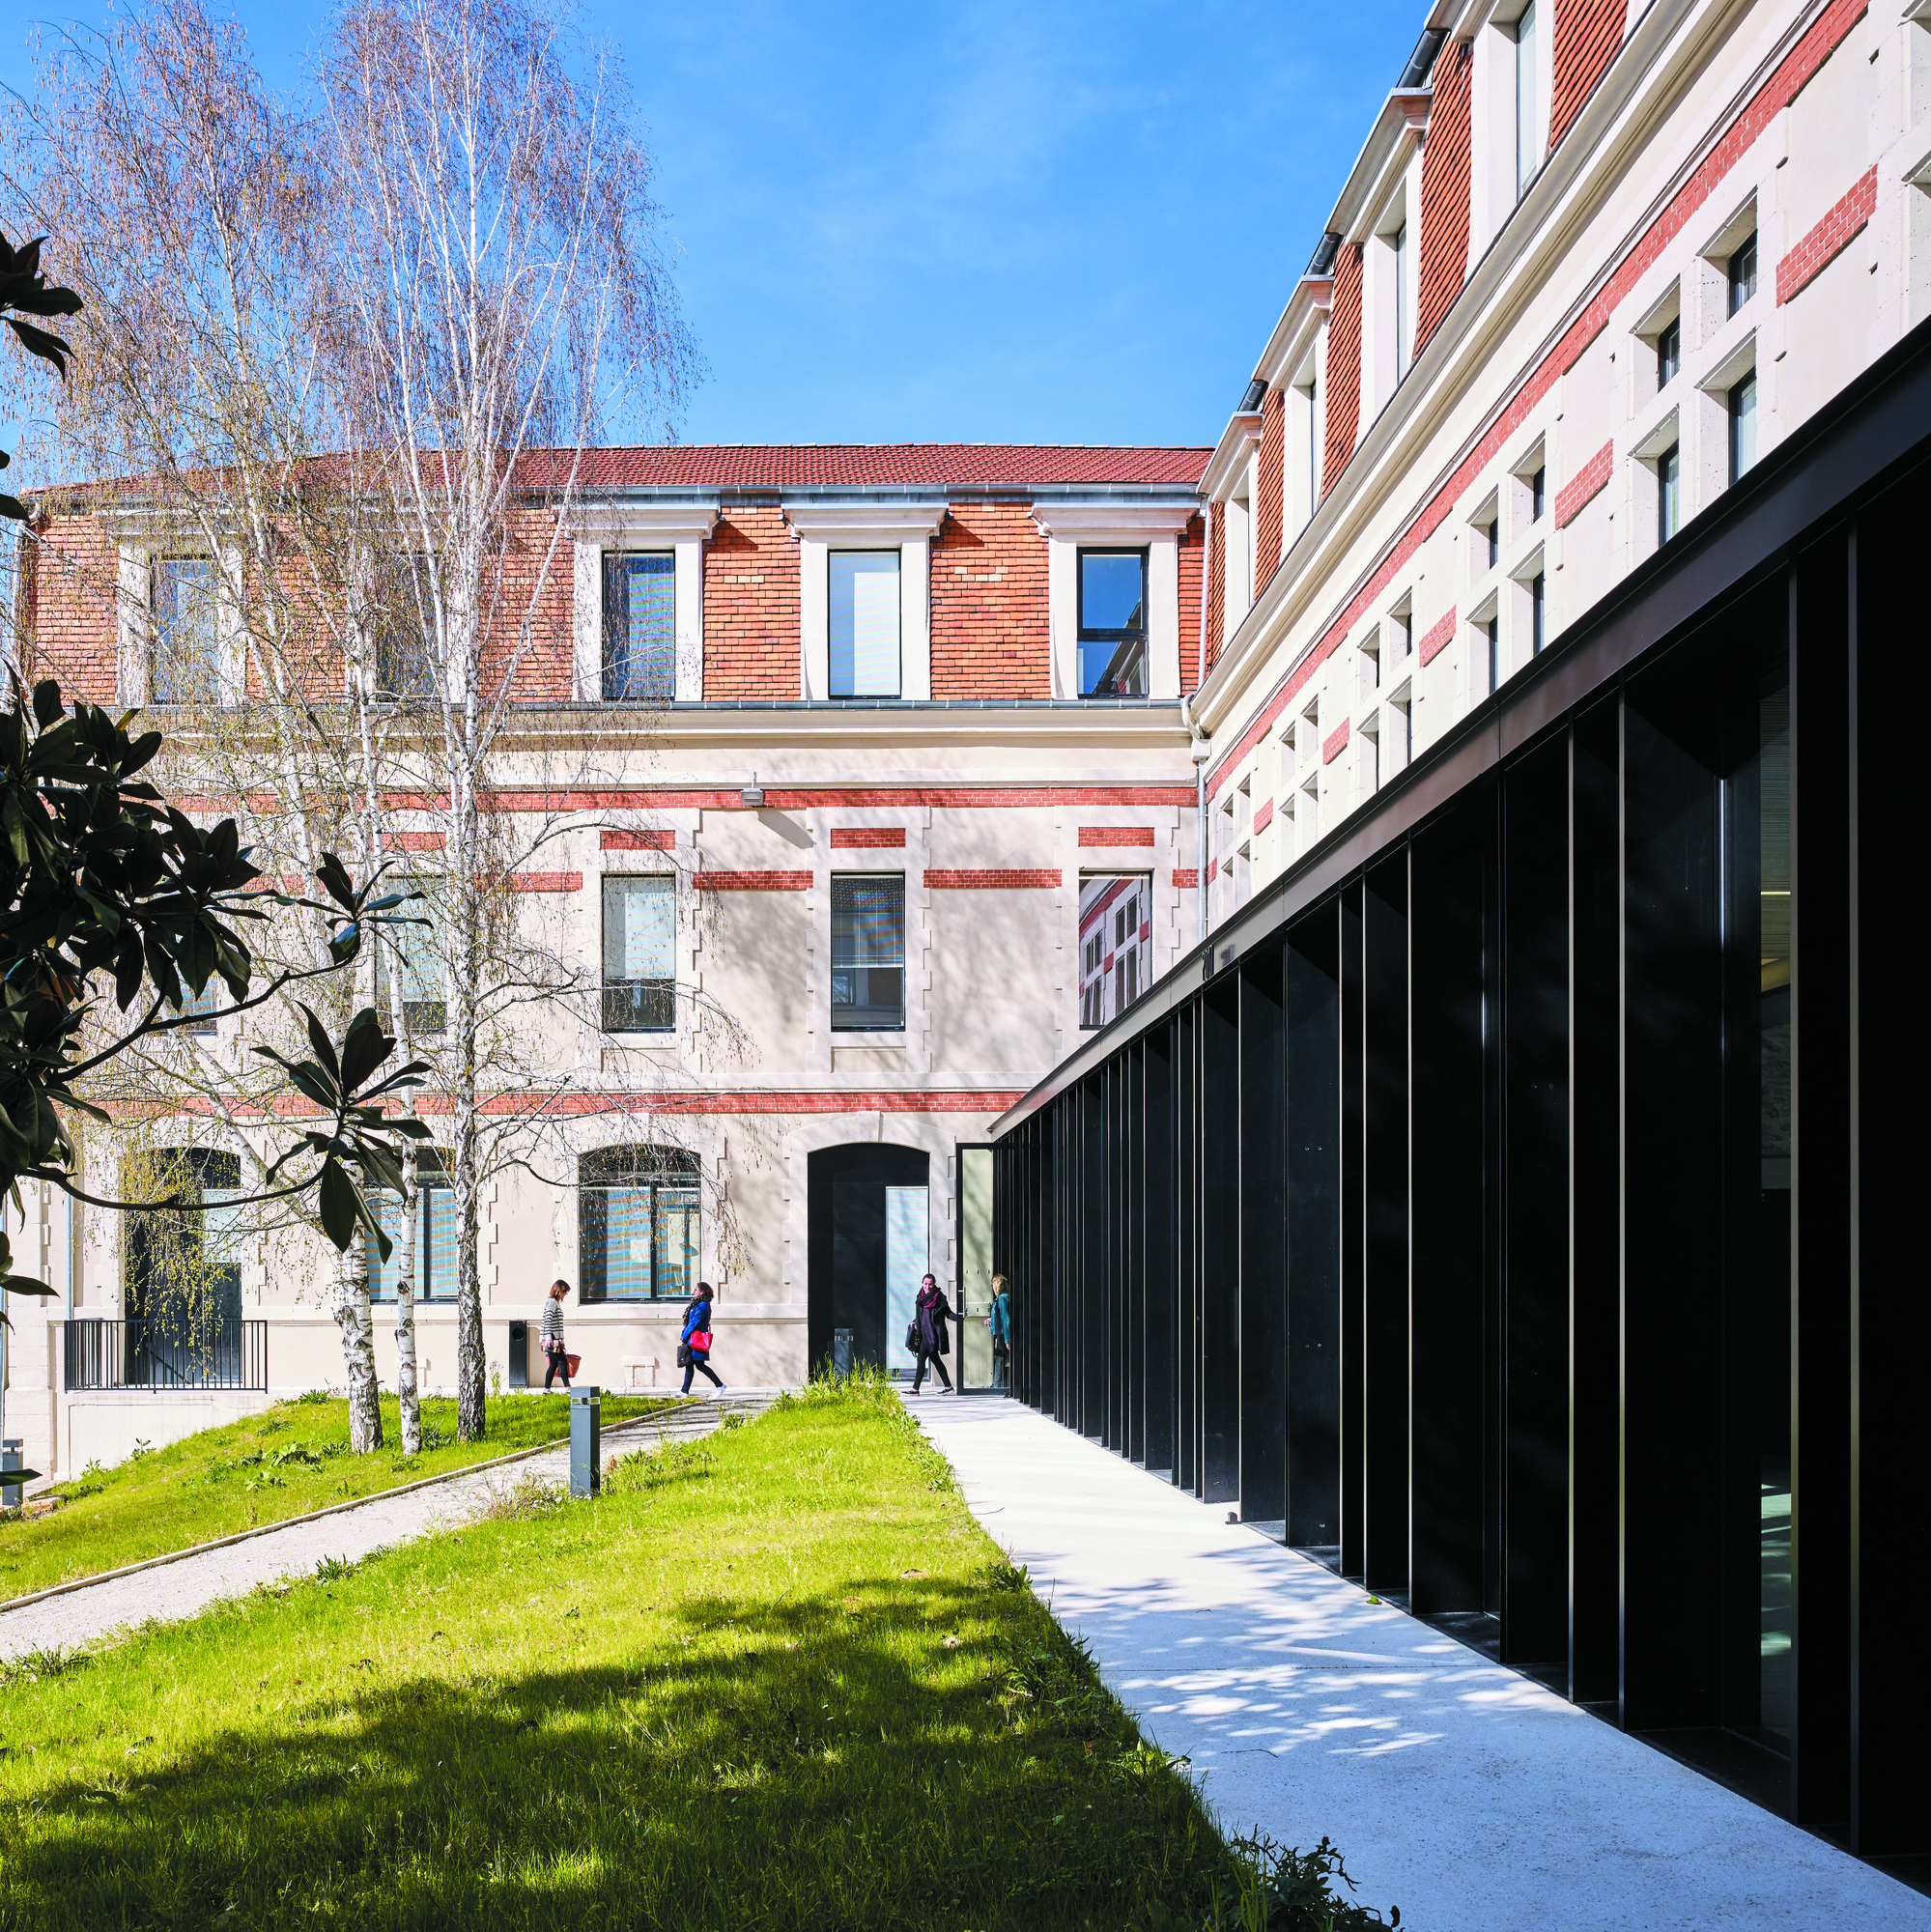 University Centre, Cahors, France - Image 4